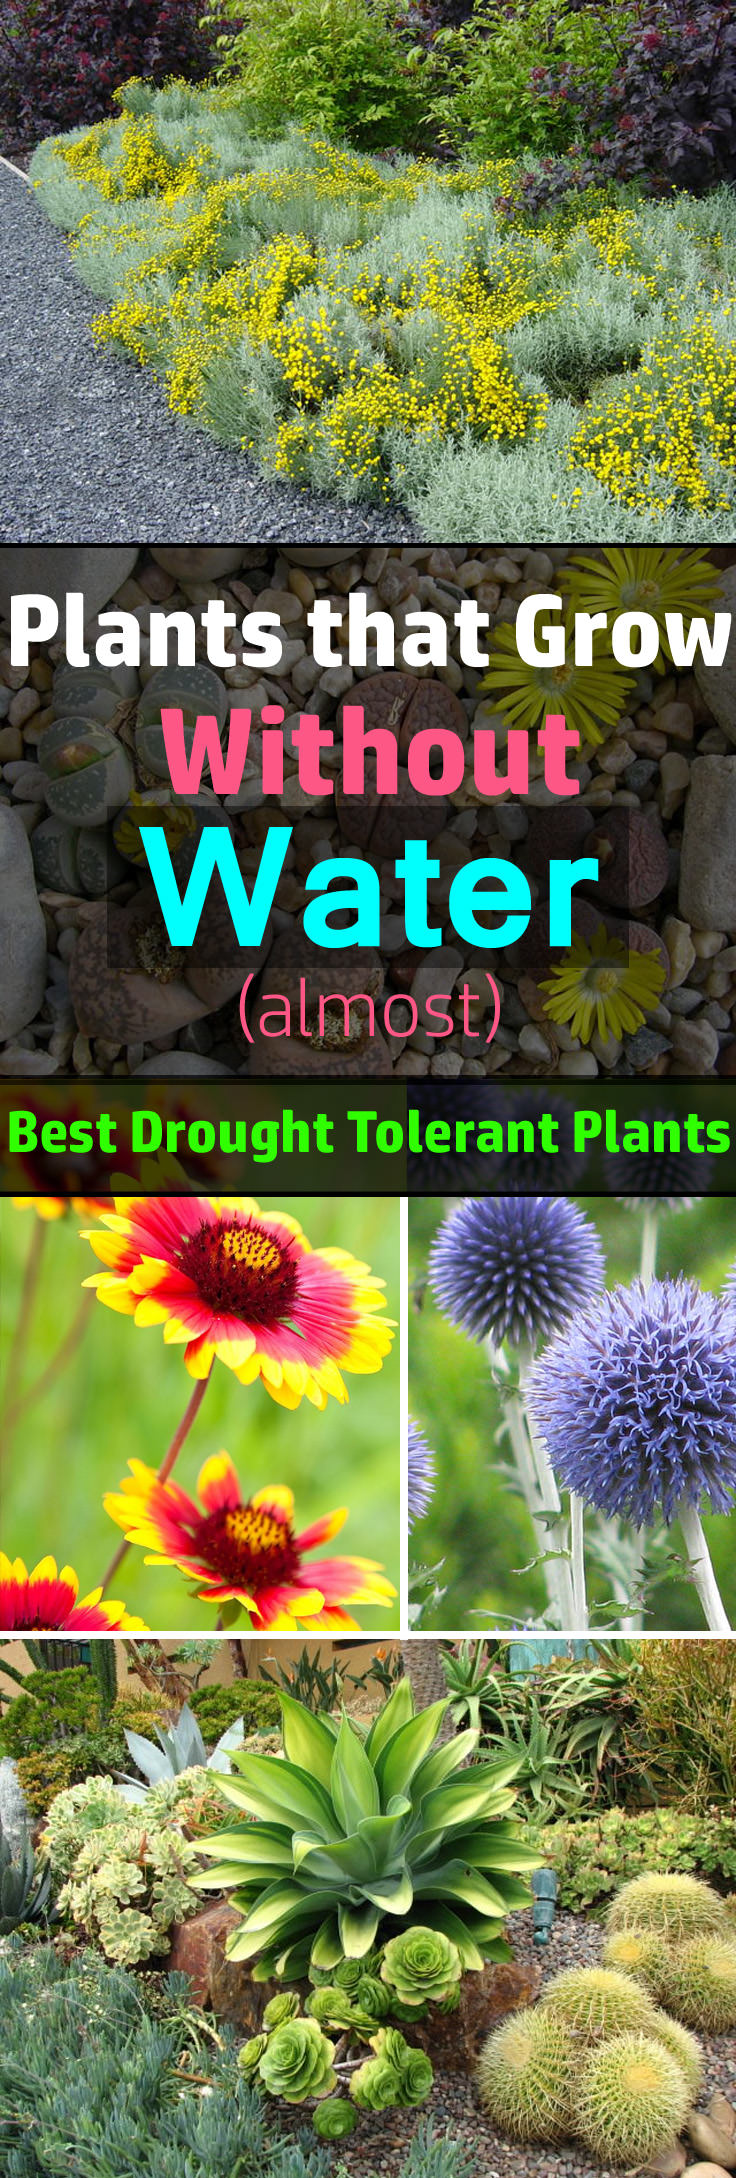 30 Best Drought Tolerant Plants That Grow In Lack Of Water